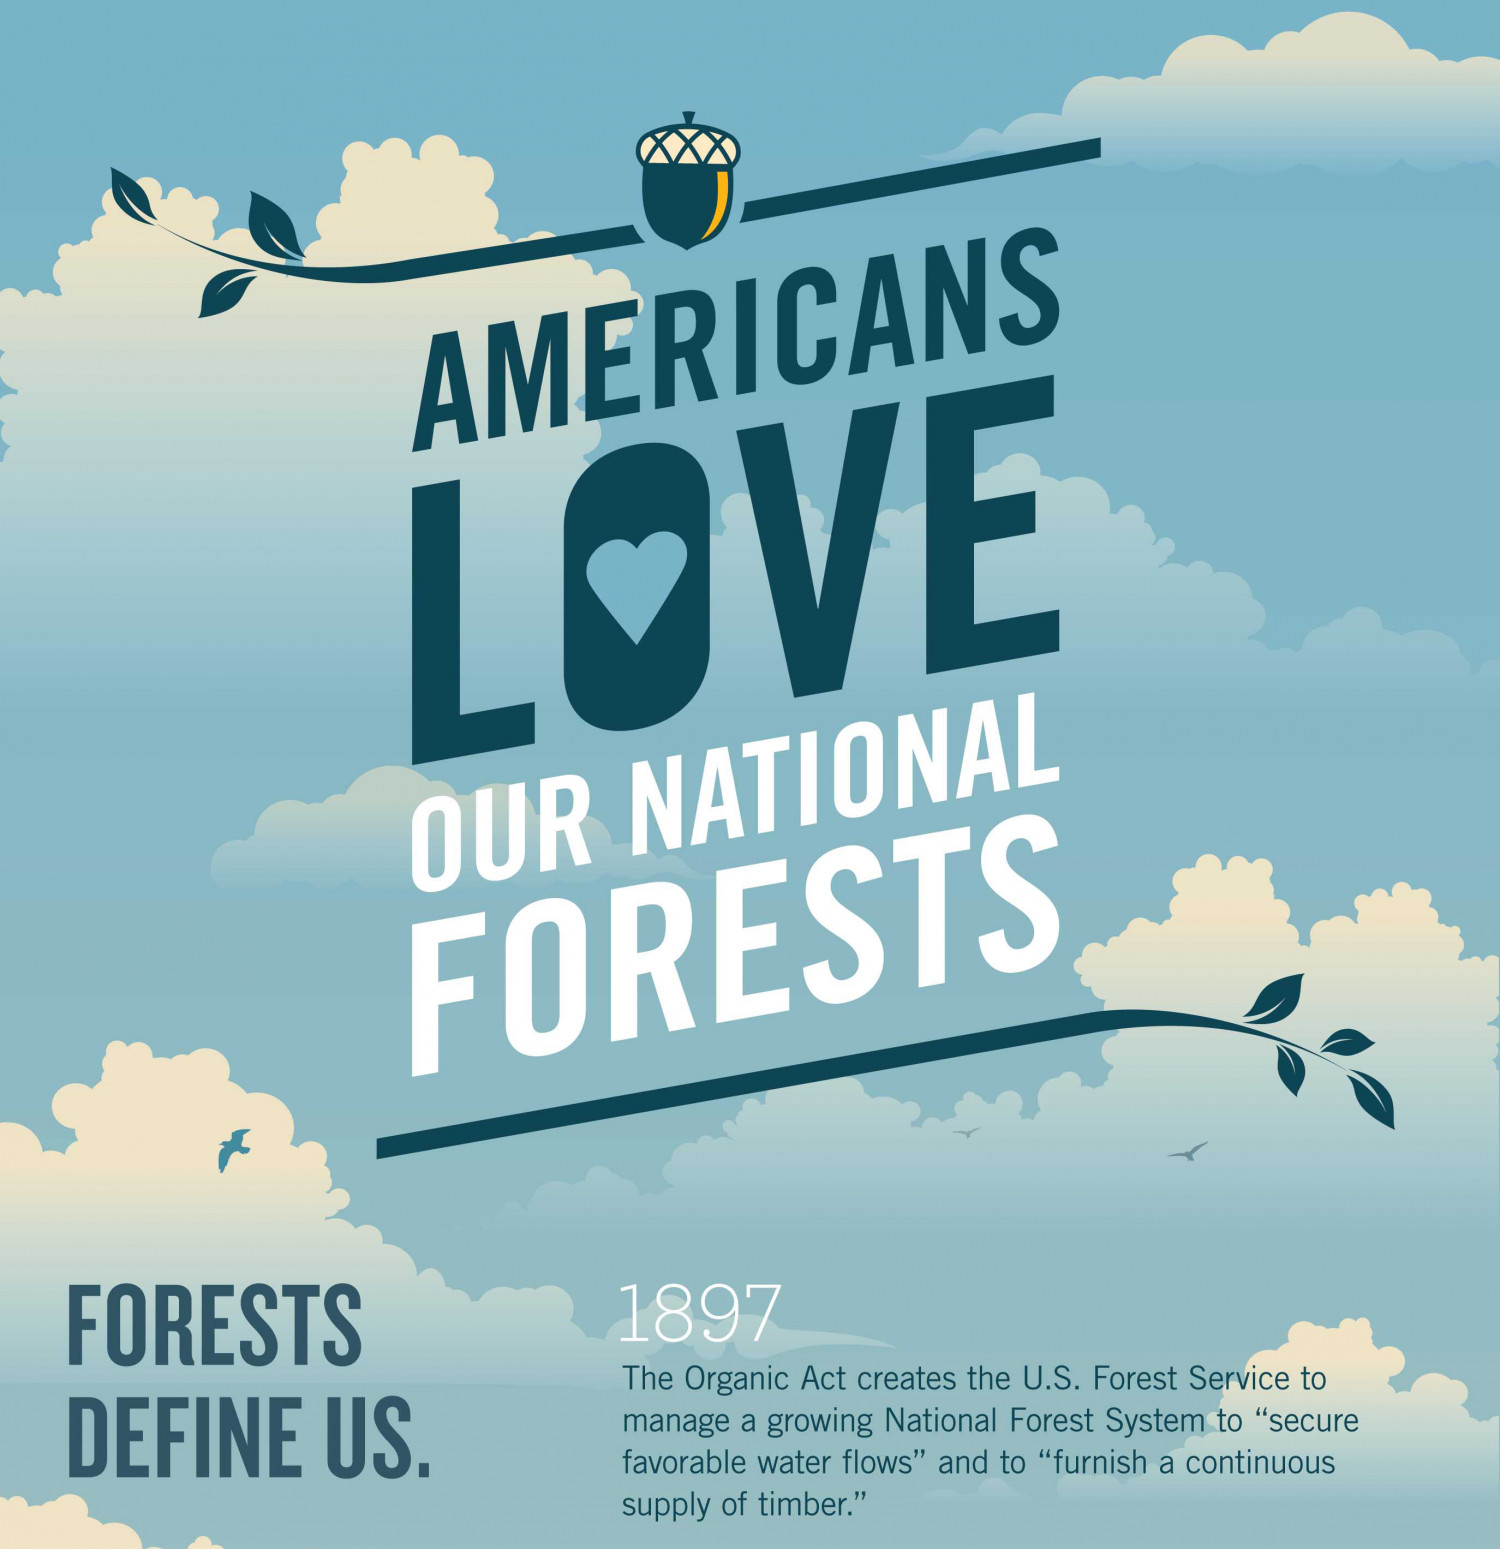 Americans Love Our National Forests Infographic